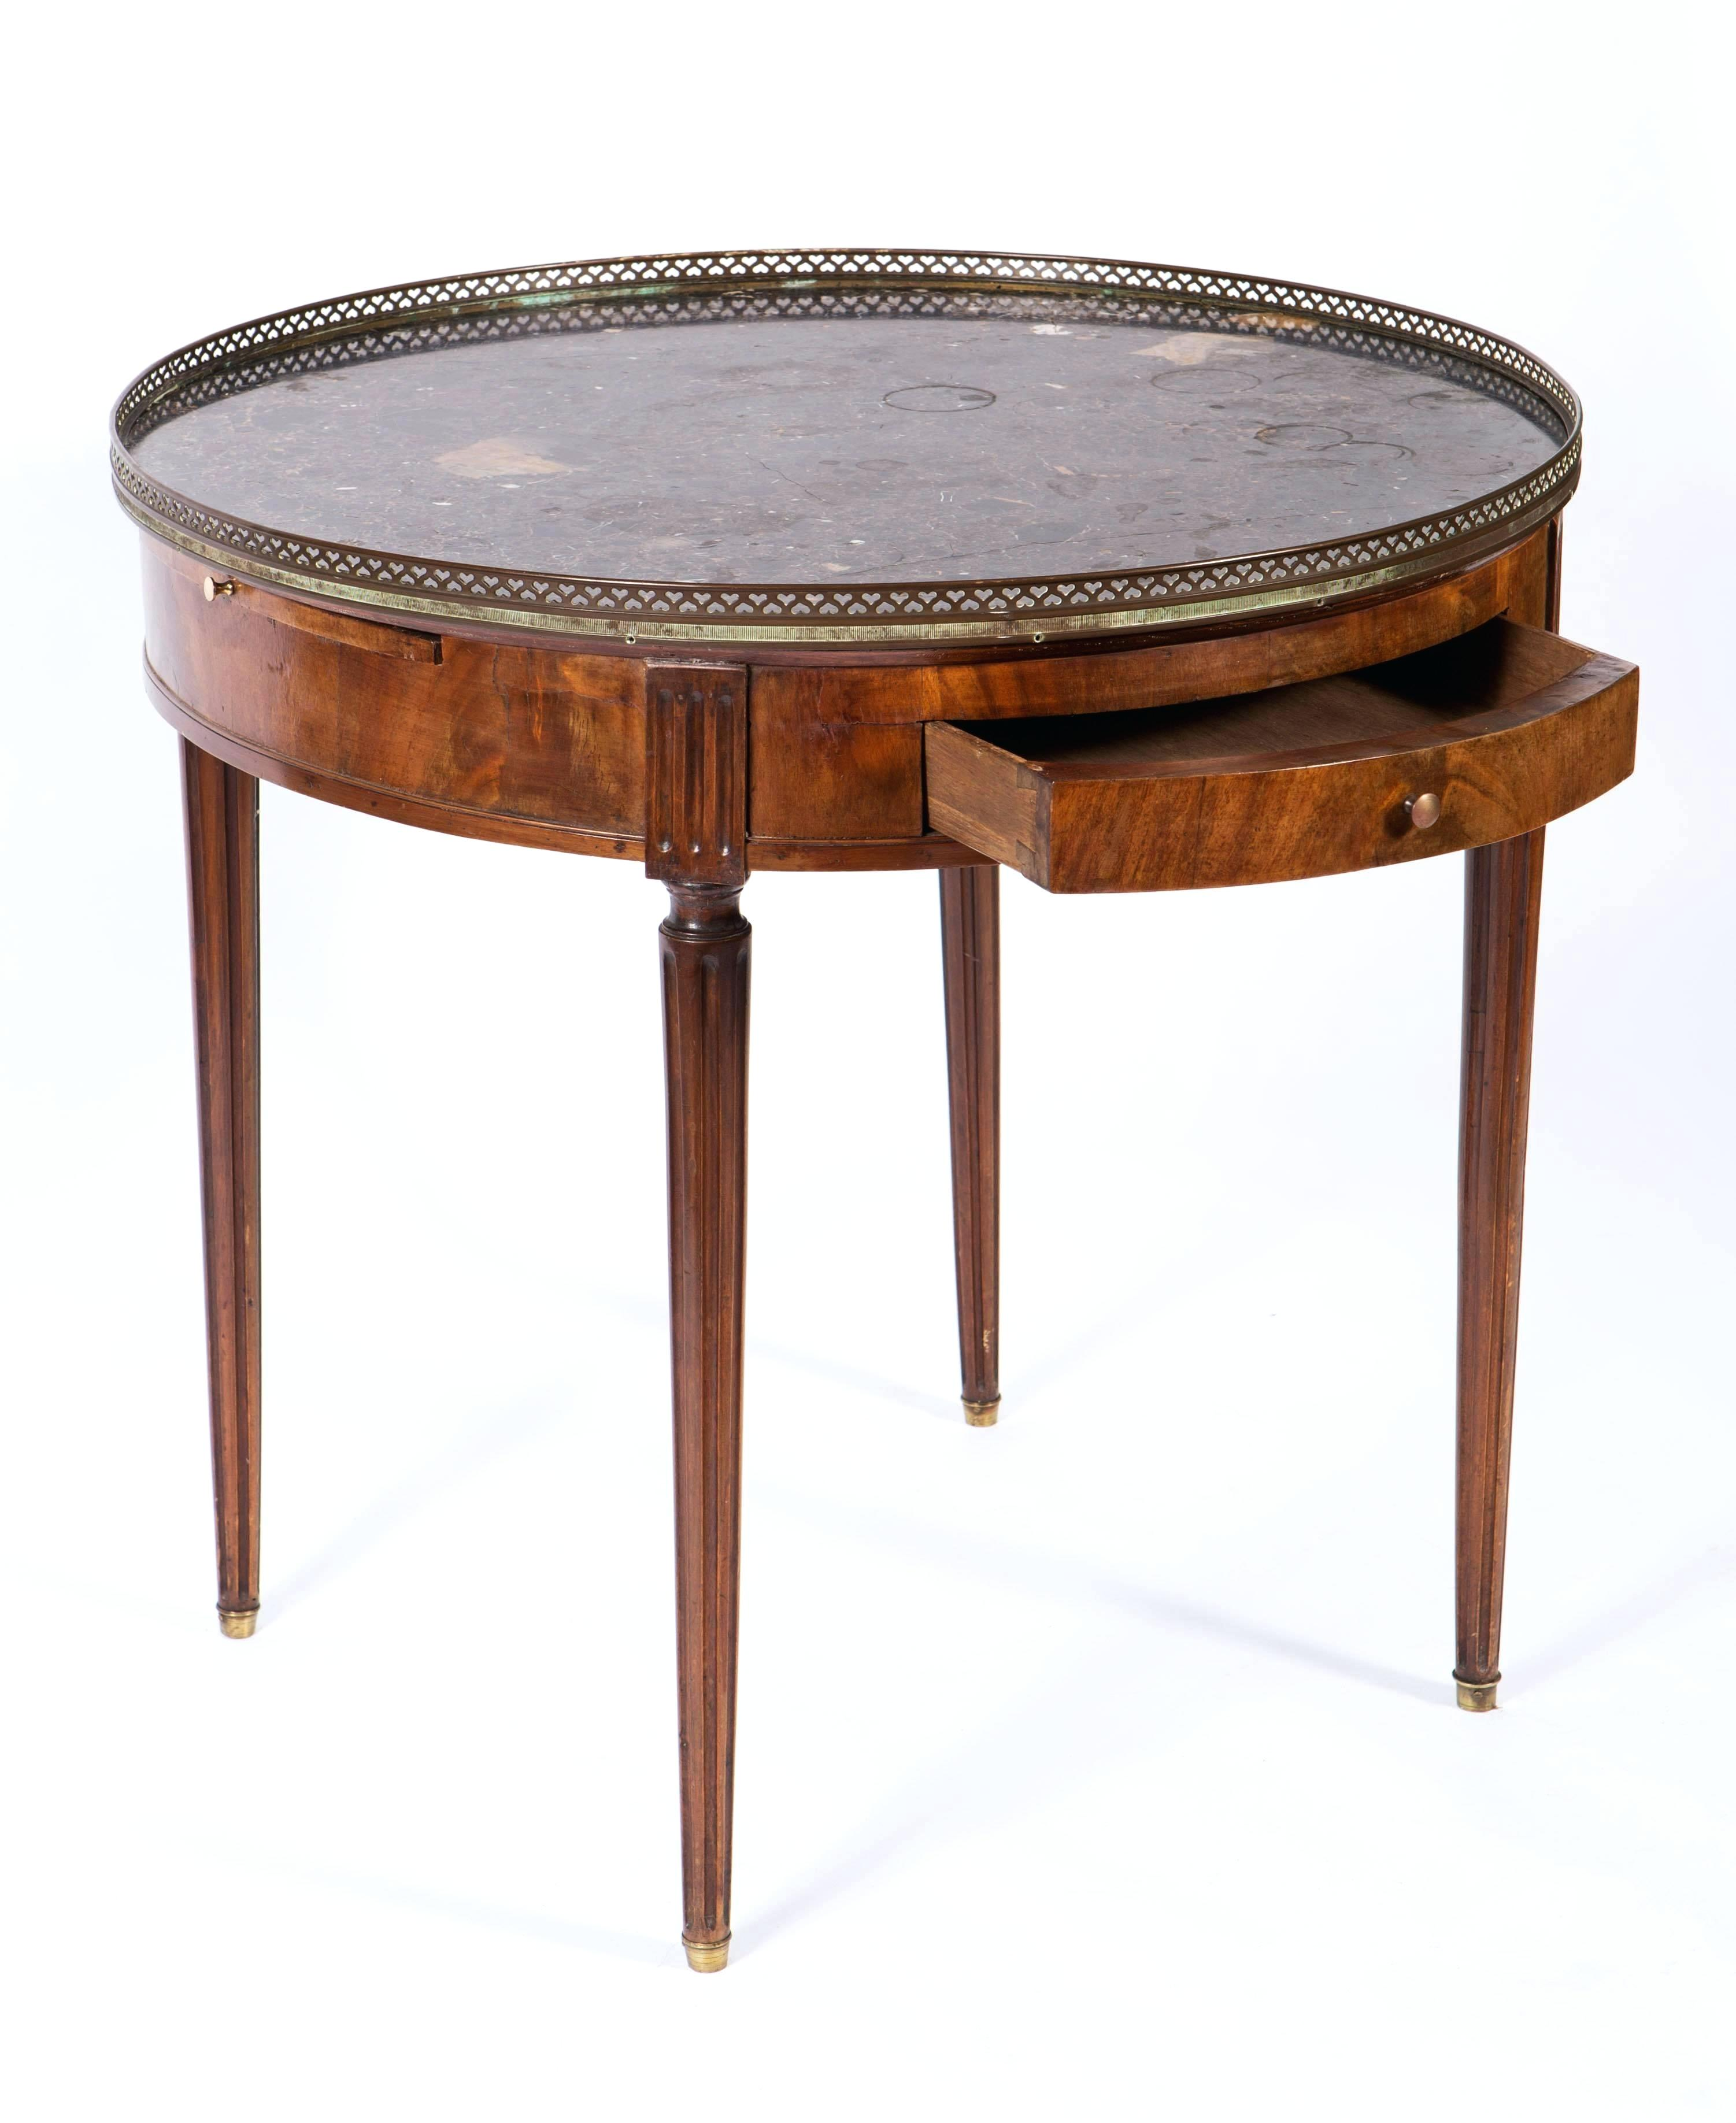 gold and marble end table round top dining antique llventures century french mahogany side with good condition for accent target thin bedside cabinets drum chairs back center